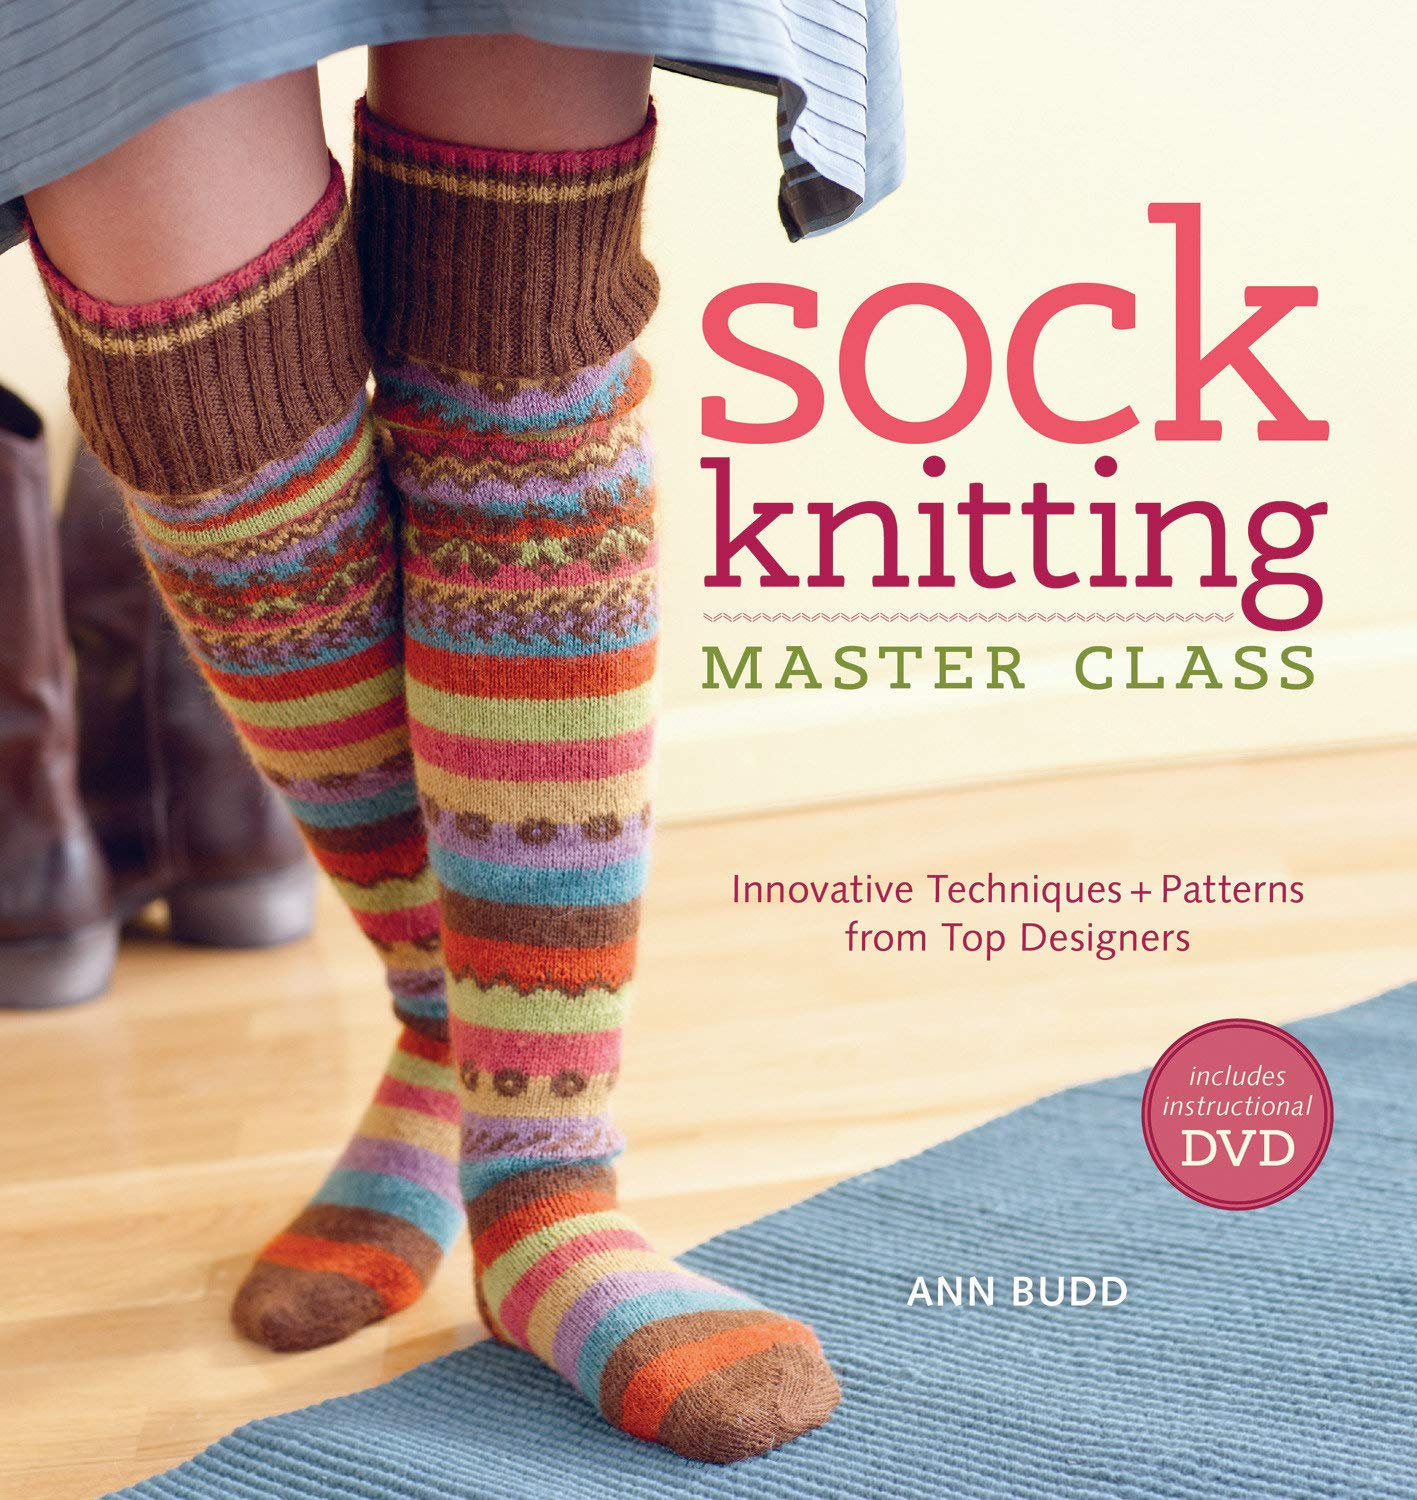 The Knitter Issue 28 2011